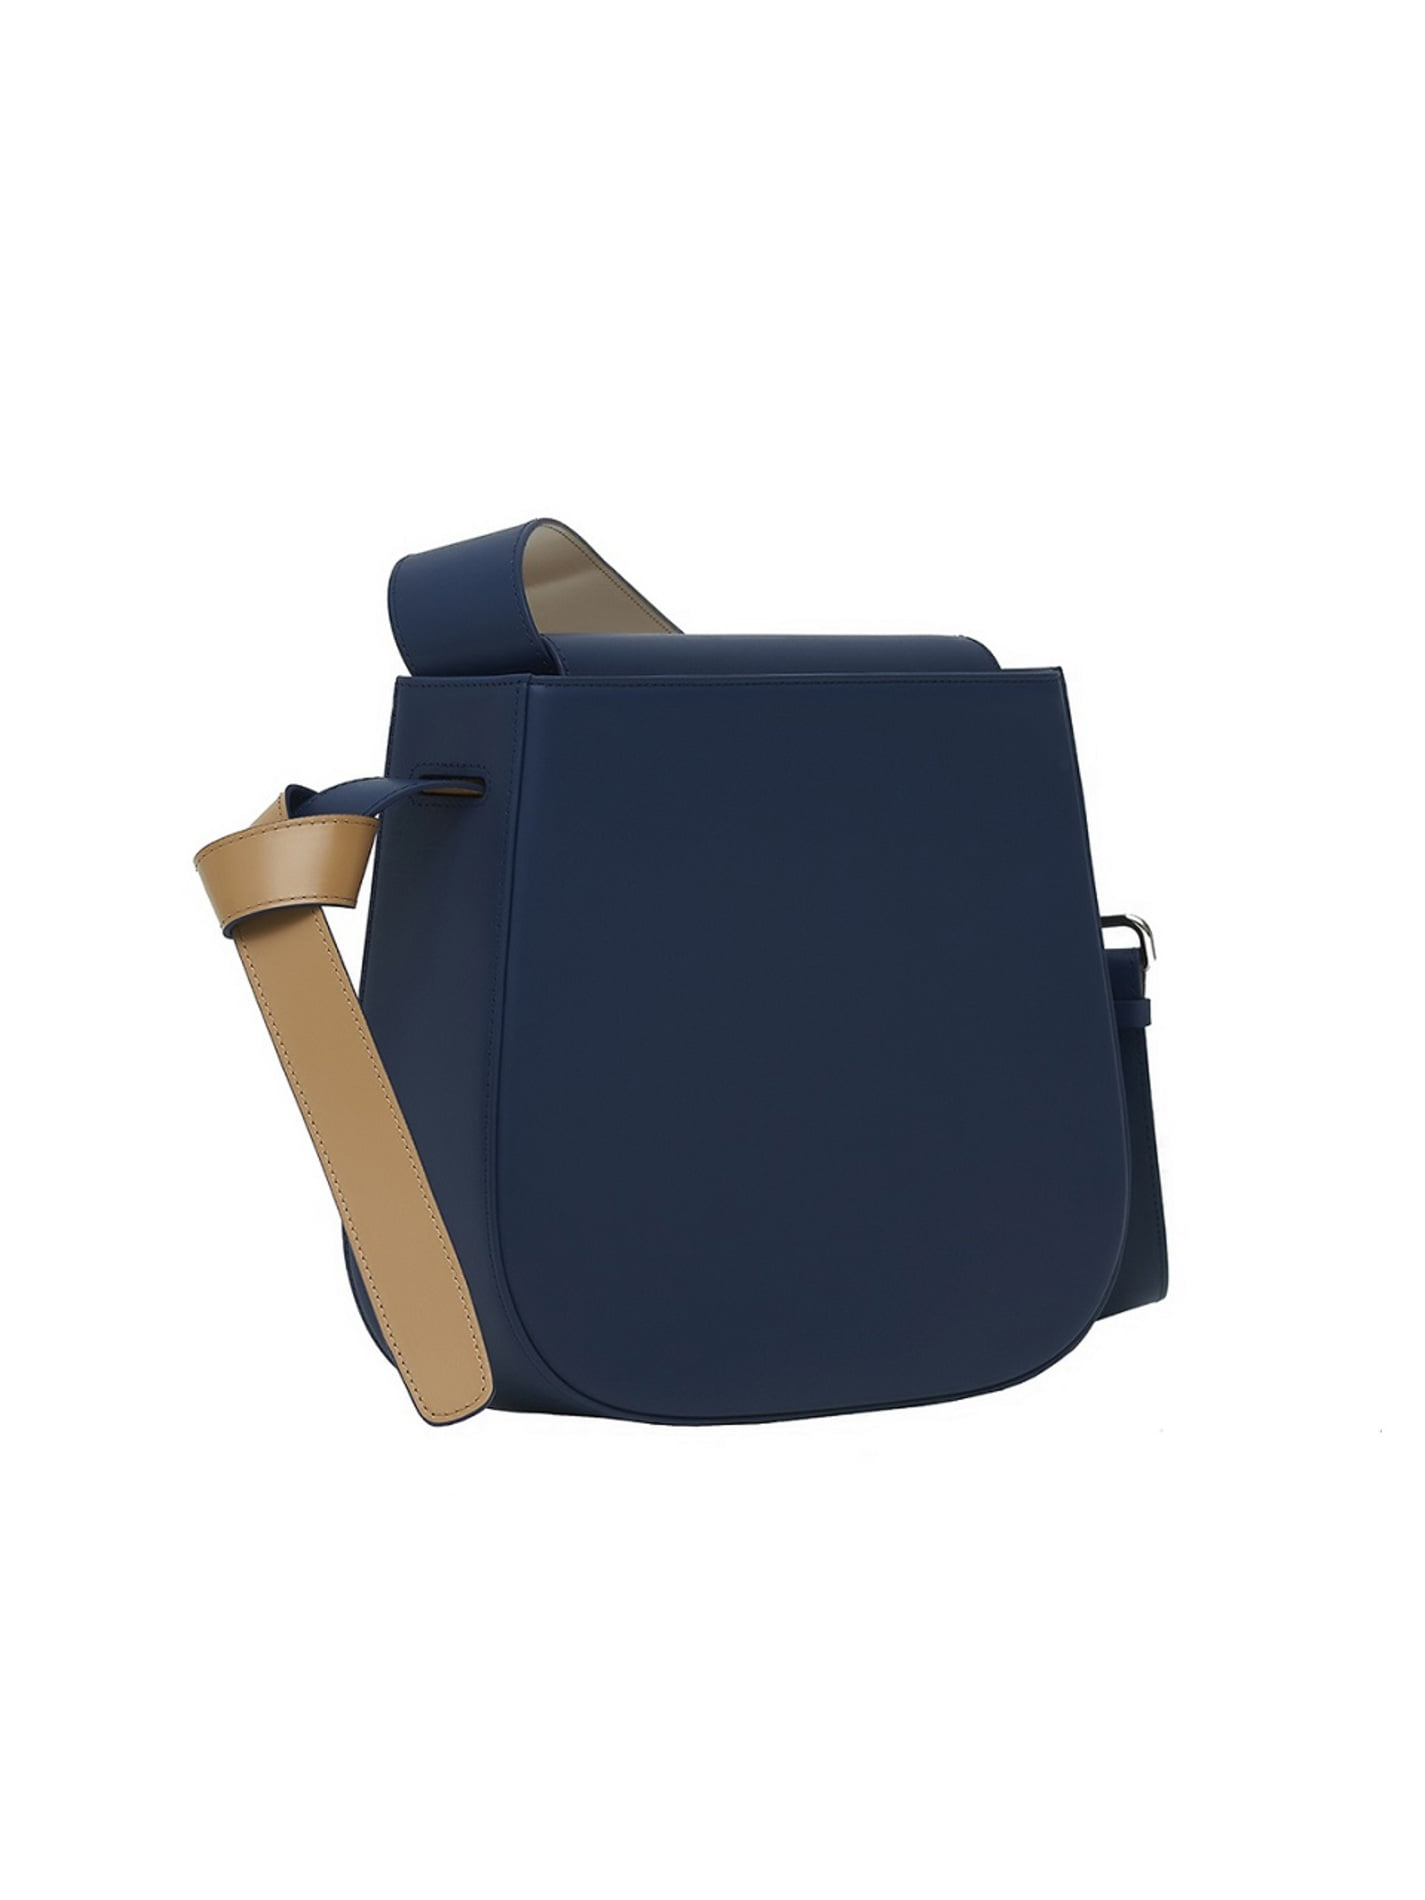 COLOR BLOCK BAG - BIG NAVY  [Summer Sale -50%]